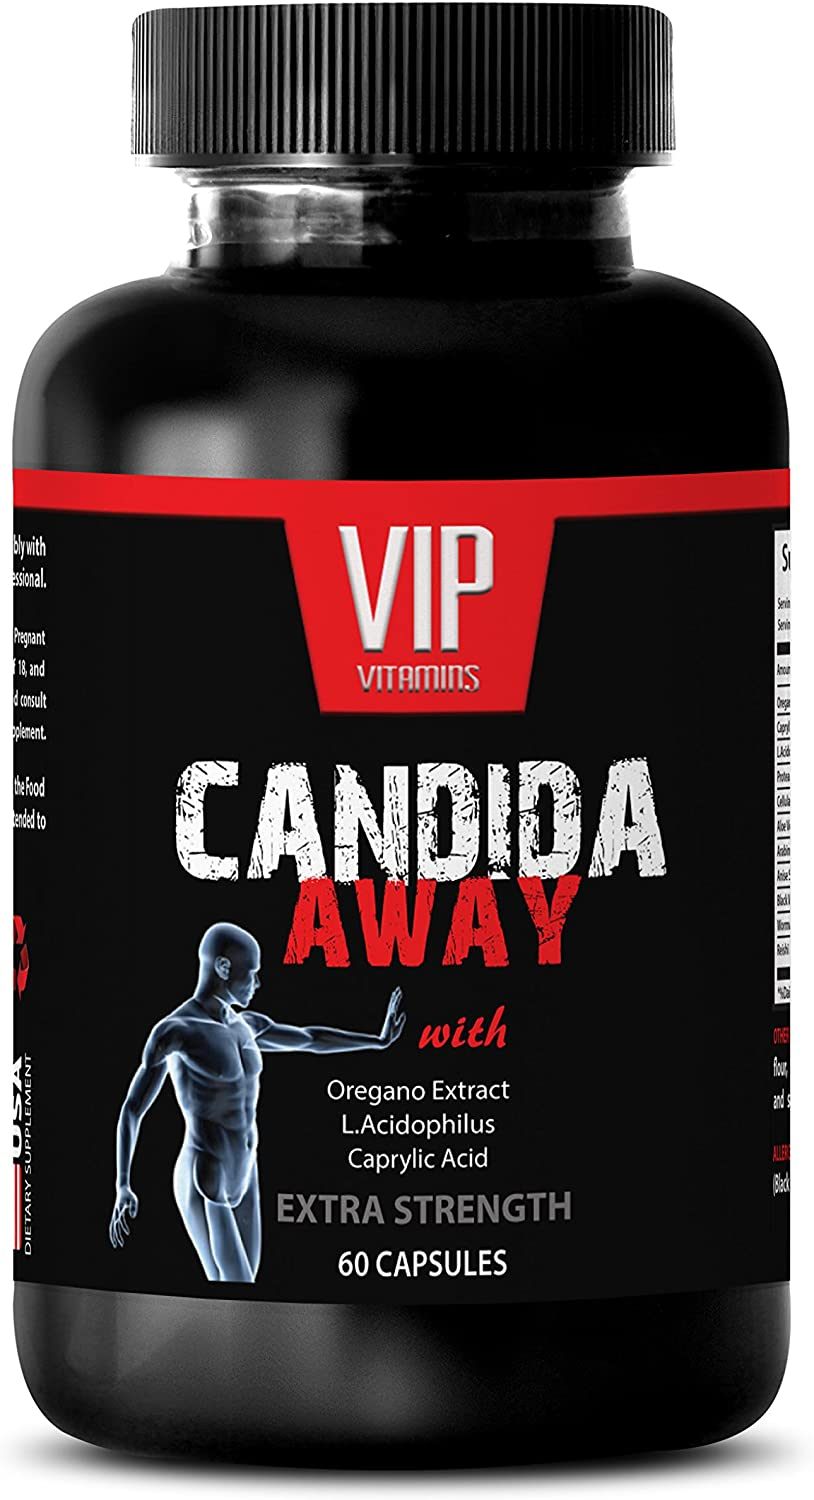 Natural detoxification Supplement - Candida Away Extra Strength Formula - Natural Solution - Digestive AID - Candida Vitamins - 1 Bottle 60 Capsules